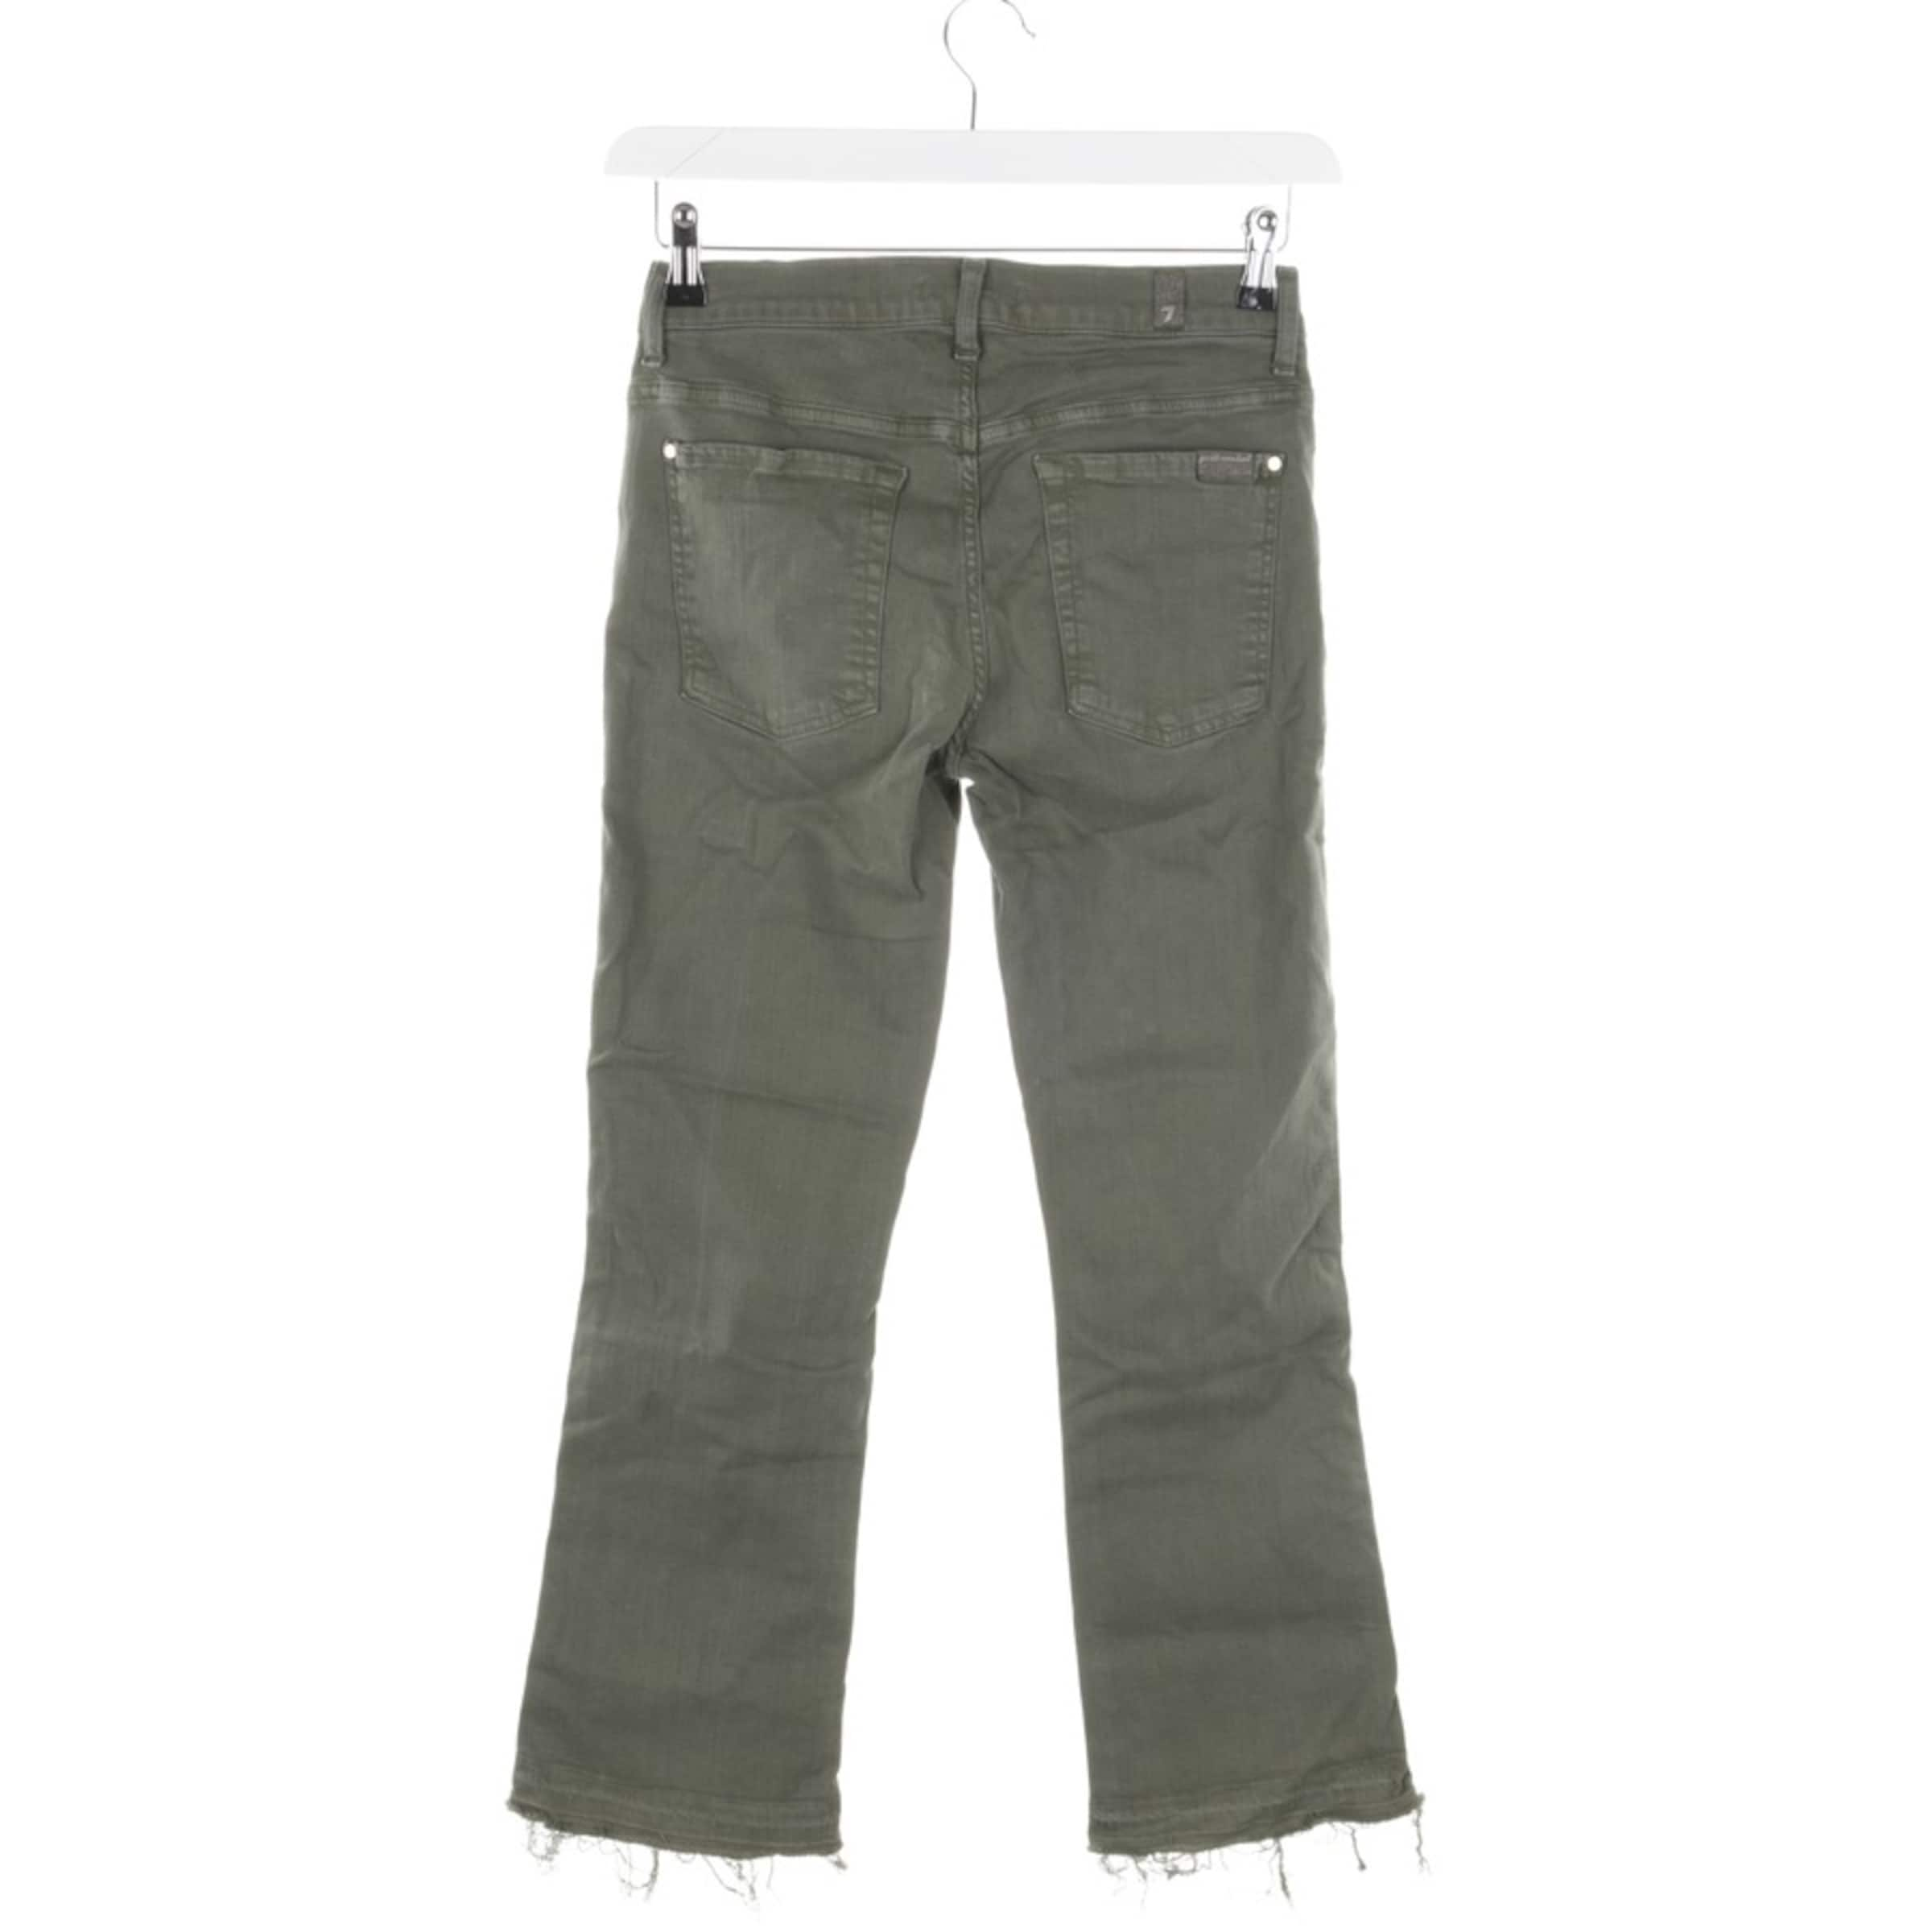 7 for all mankind Jeans in w27 in khaki